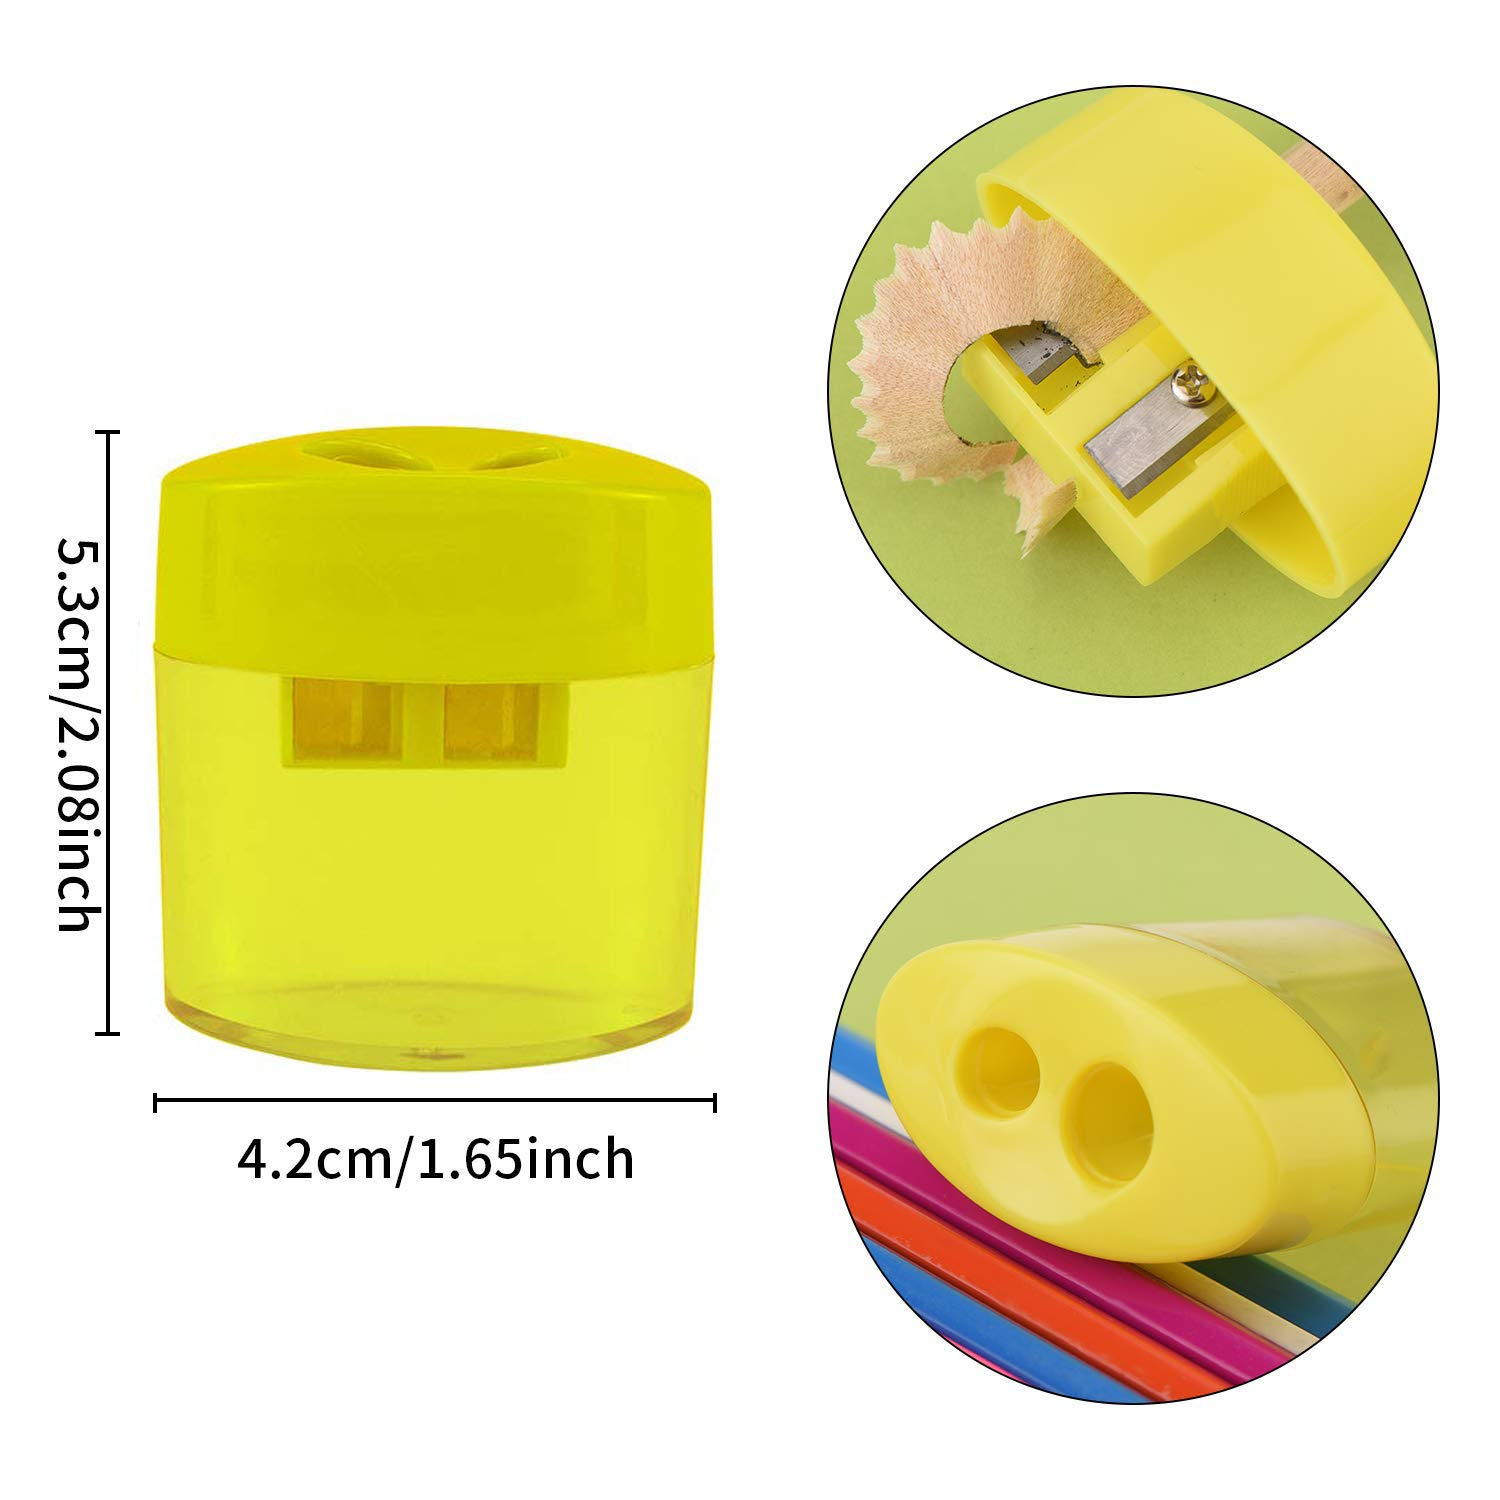 Manual Pencil Sharpener Hand Pencil Sharpener with Cover and Receptacle for School Home and Office Supply 16 Pcs Double Hole Oval Shaped Pencil Sharpener